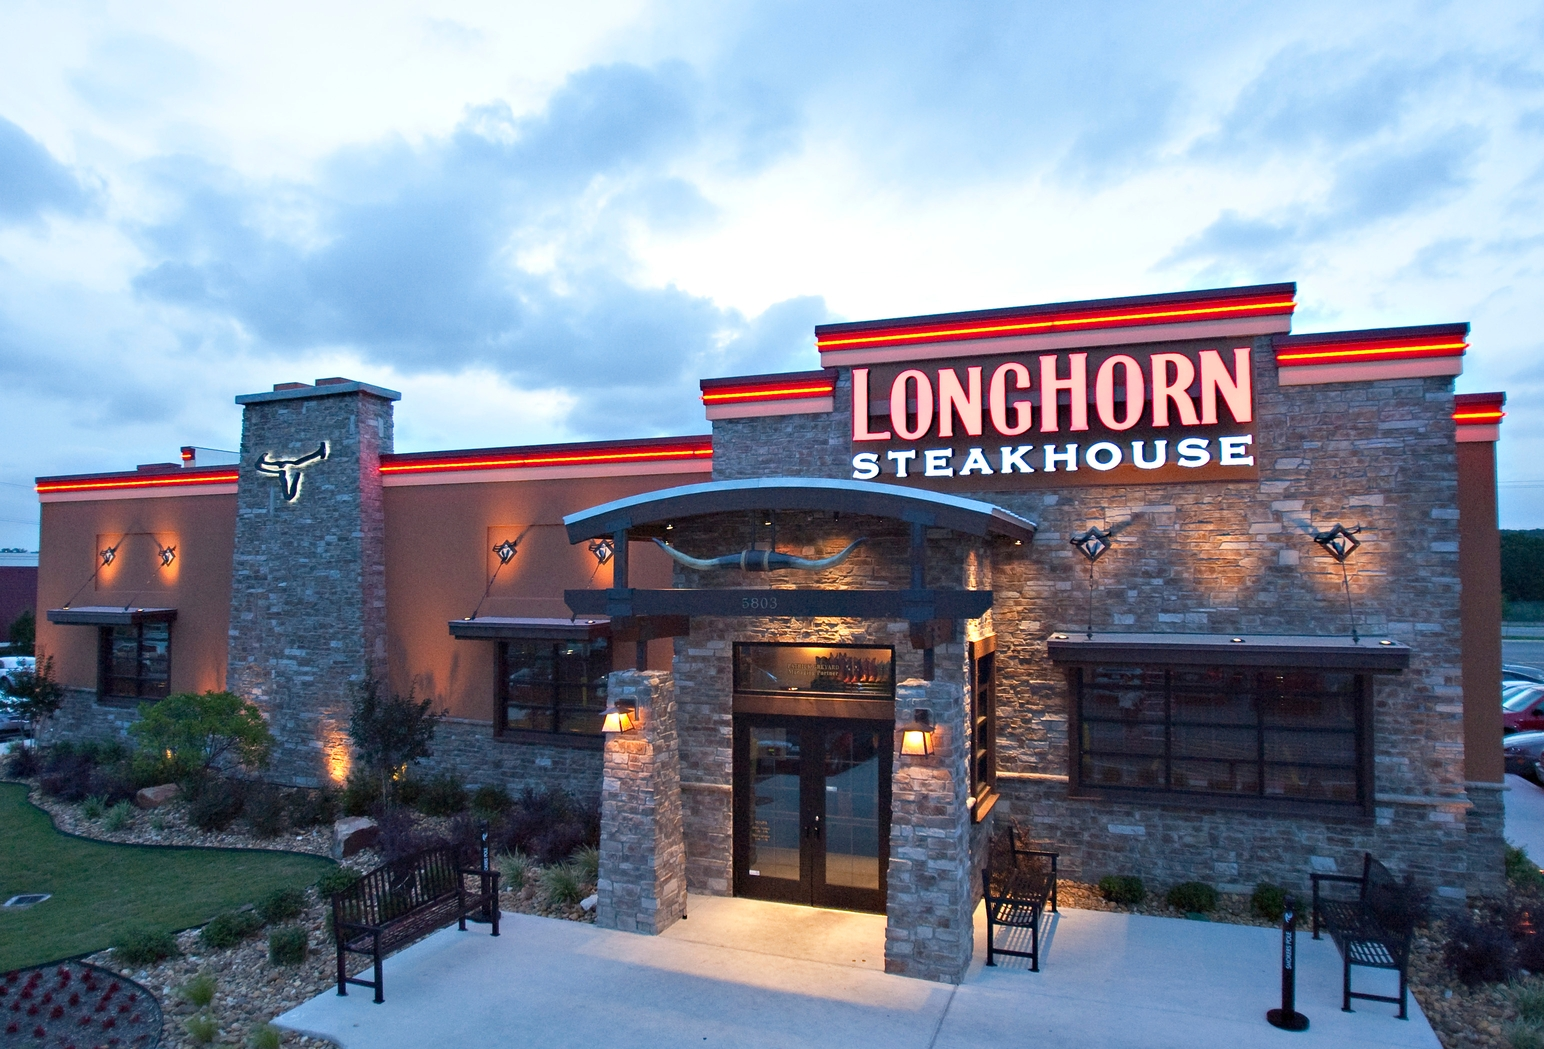 Longhorn Steakhouse near me, Longhorn steakhouse restaurant, Longhorn steakhouse hours, Longhorn Steakhouse location